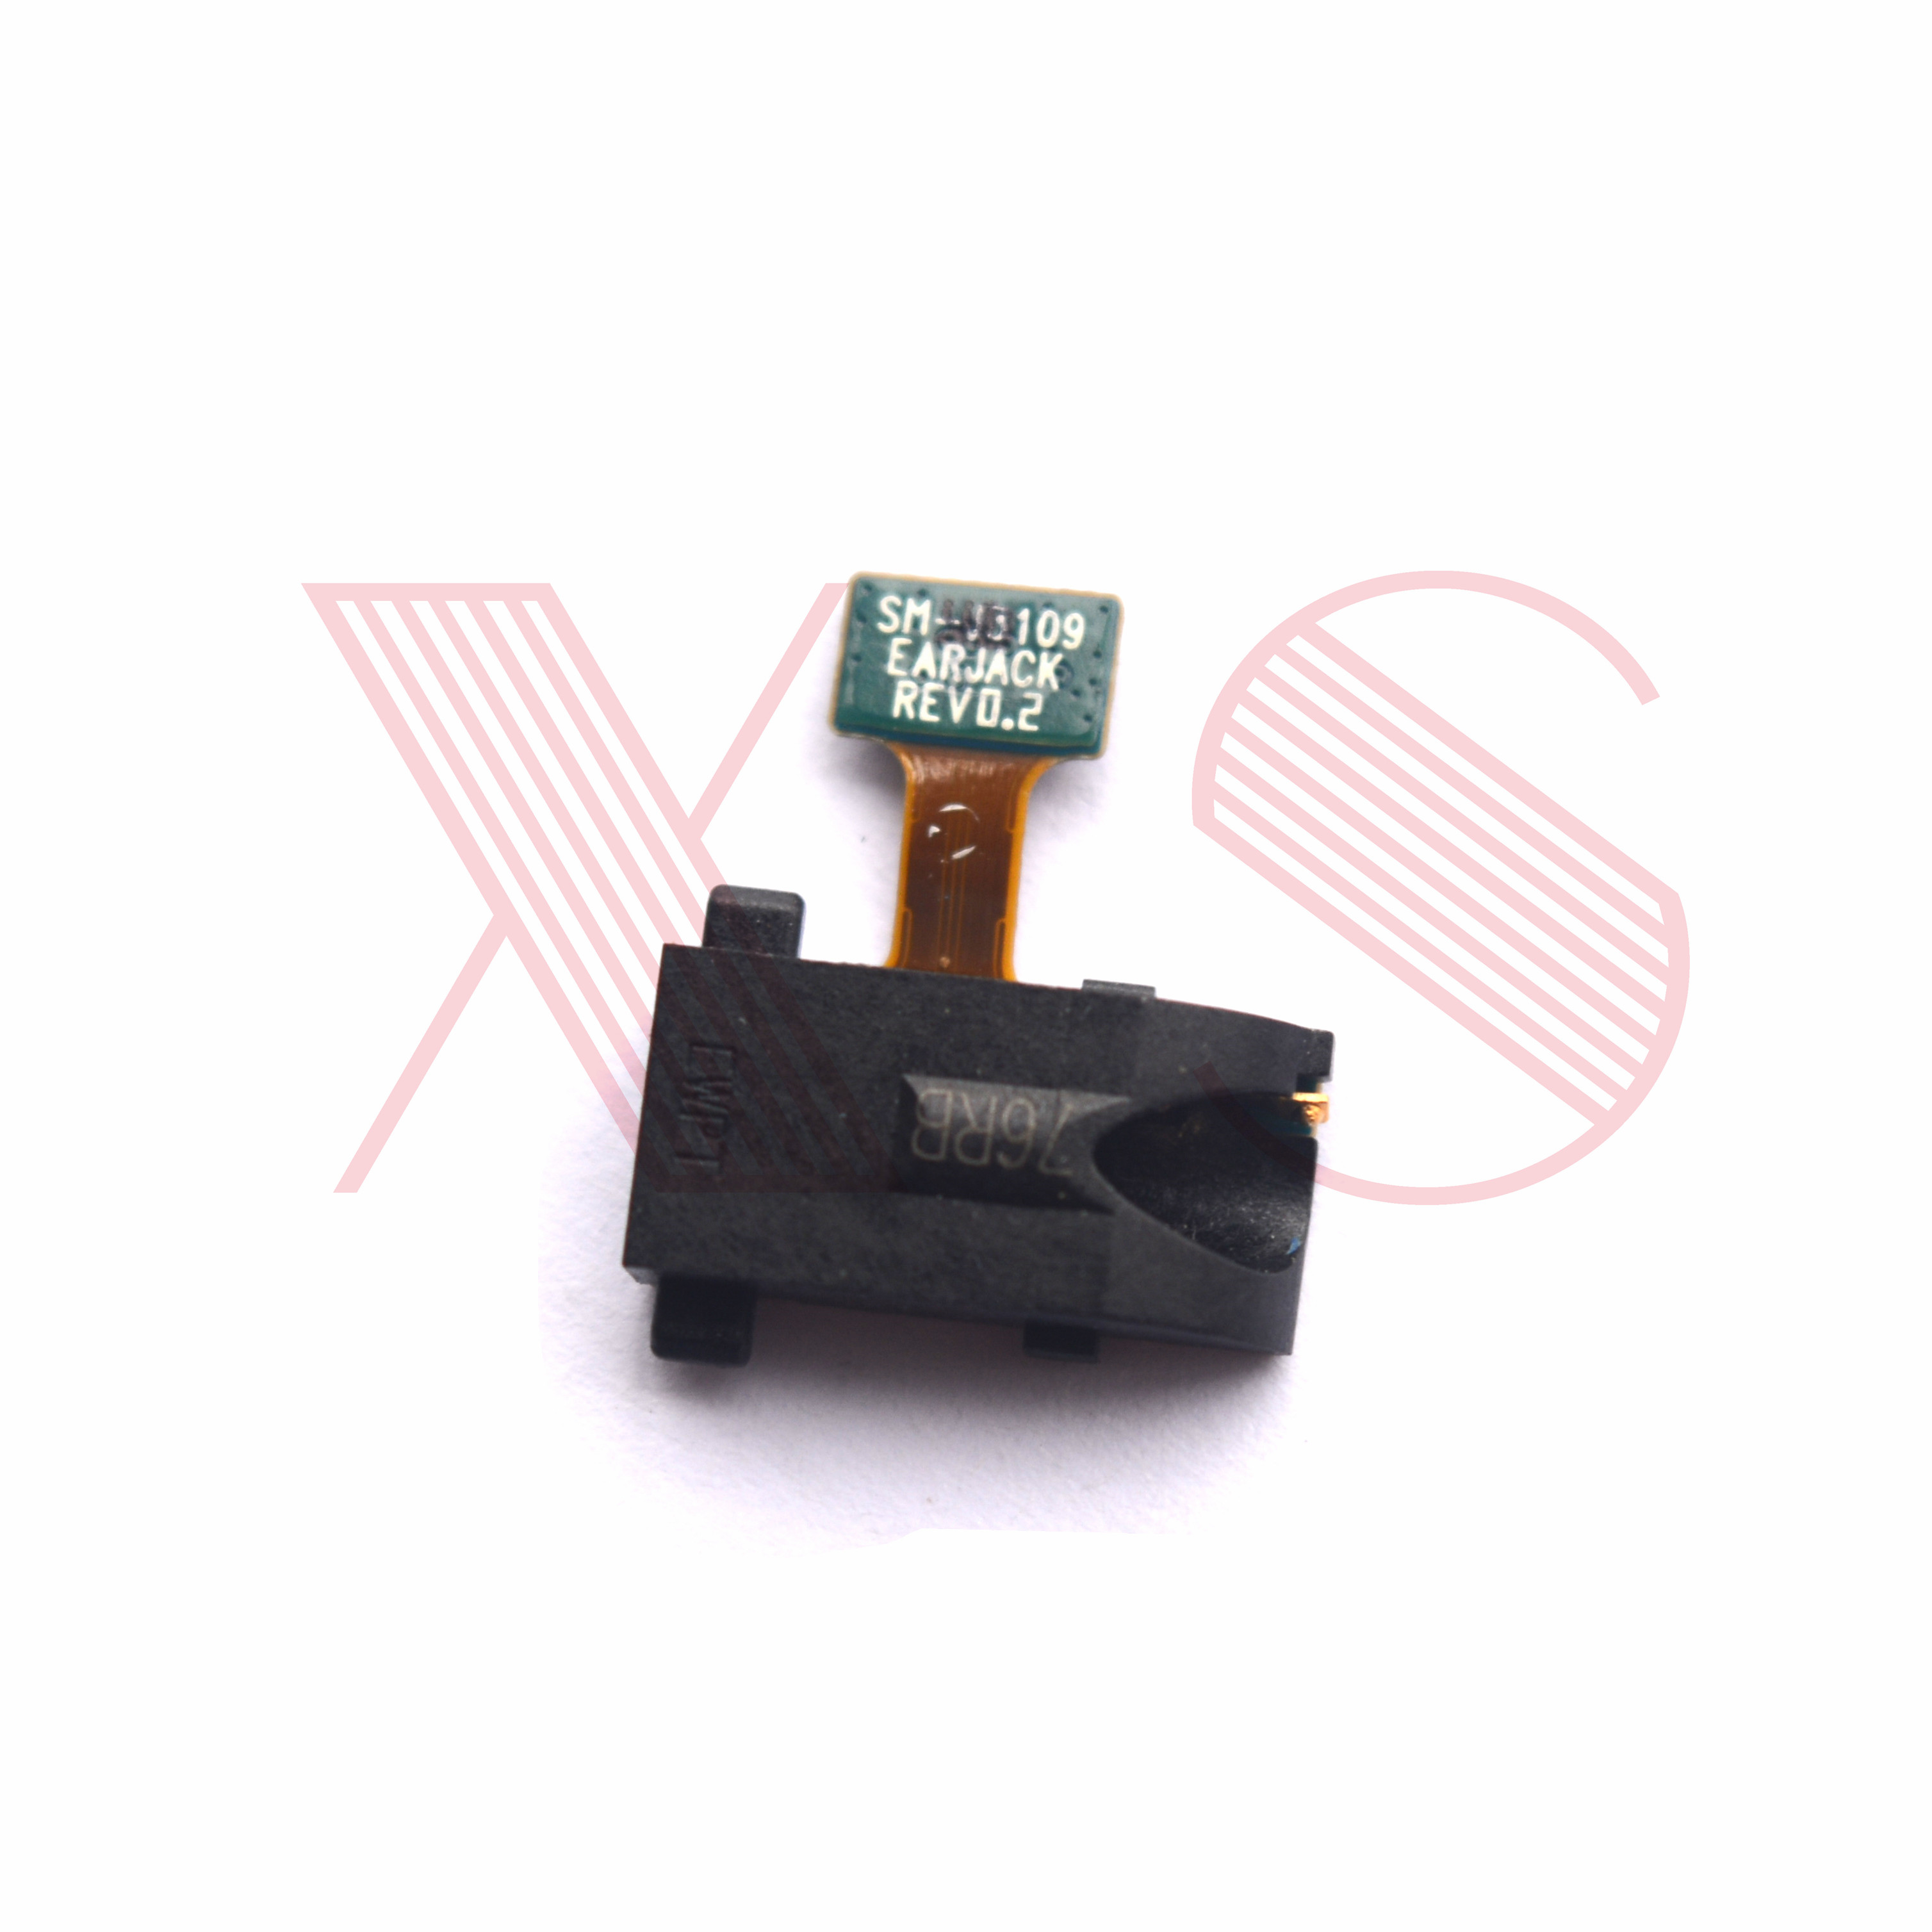 1pcs For Samsung Galaxy J3 2016 SM-J320 Earphone Headphone Jack Audio Flex Cable